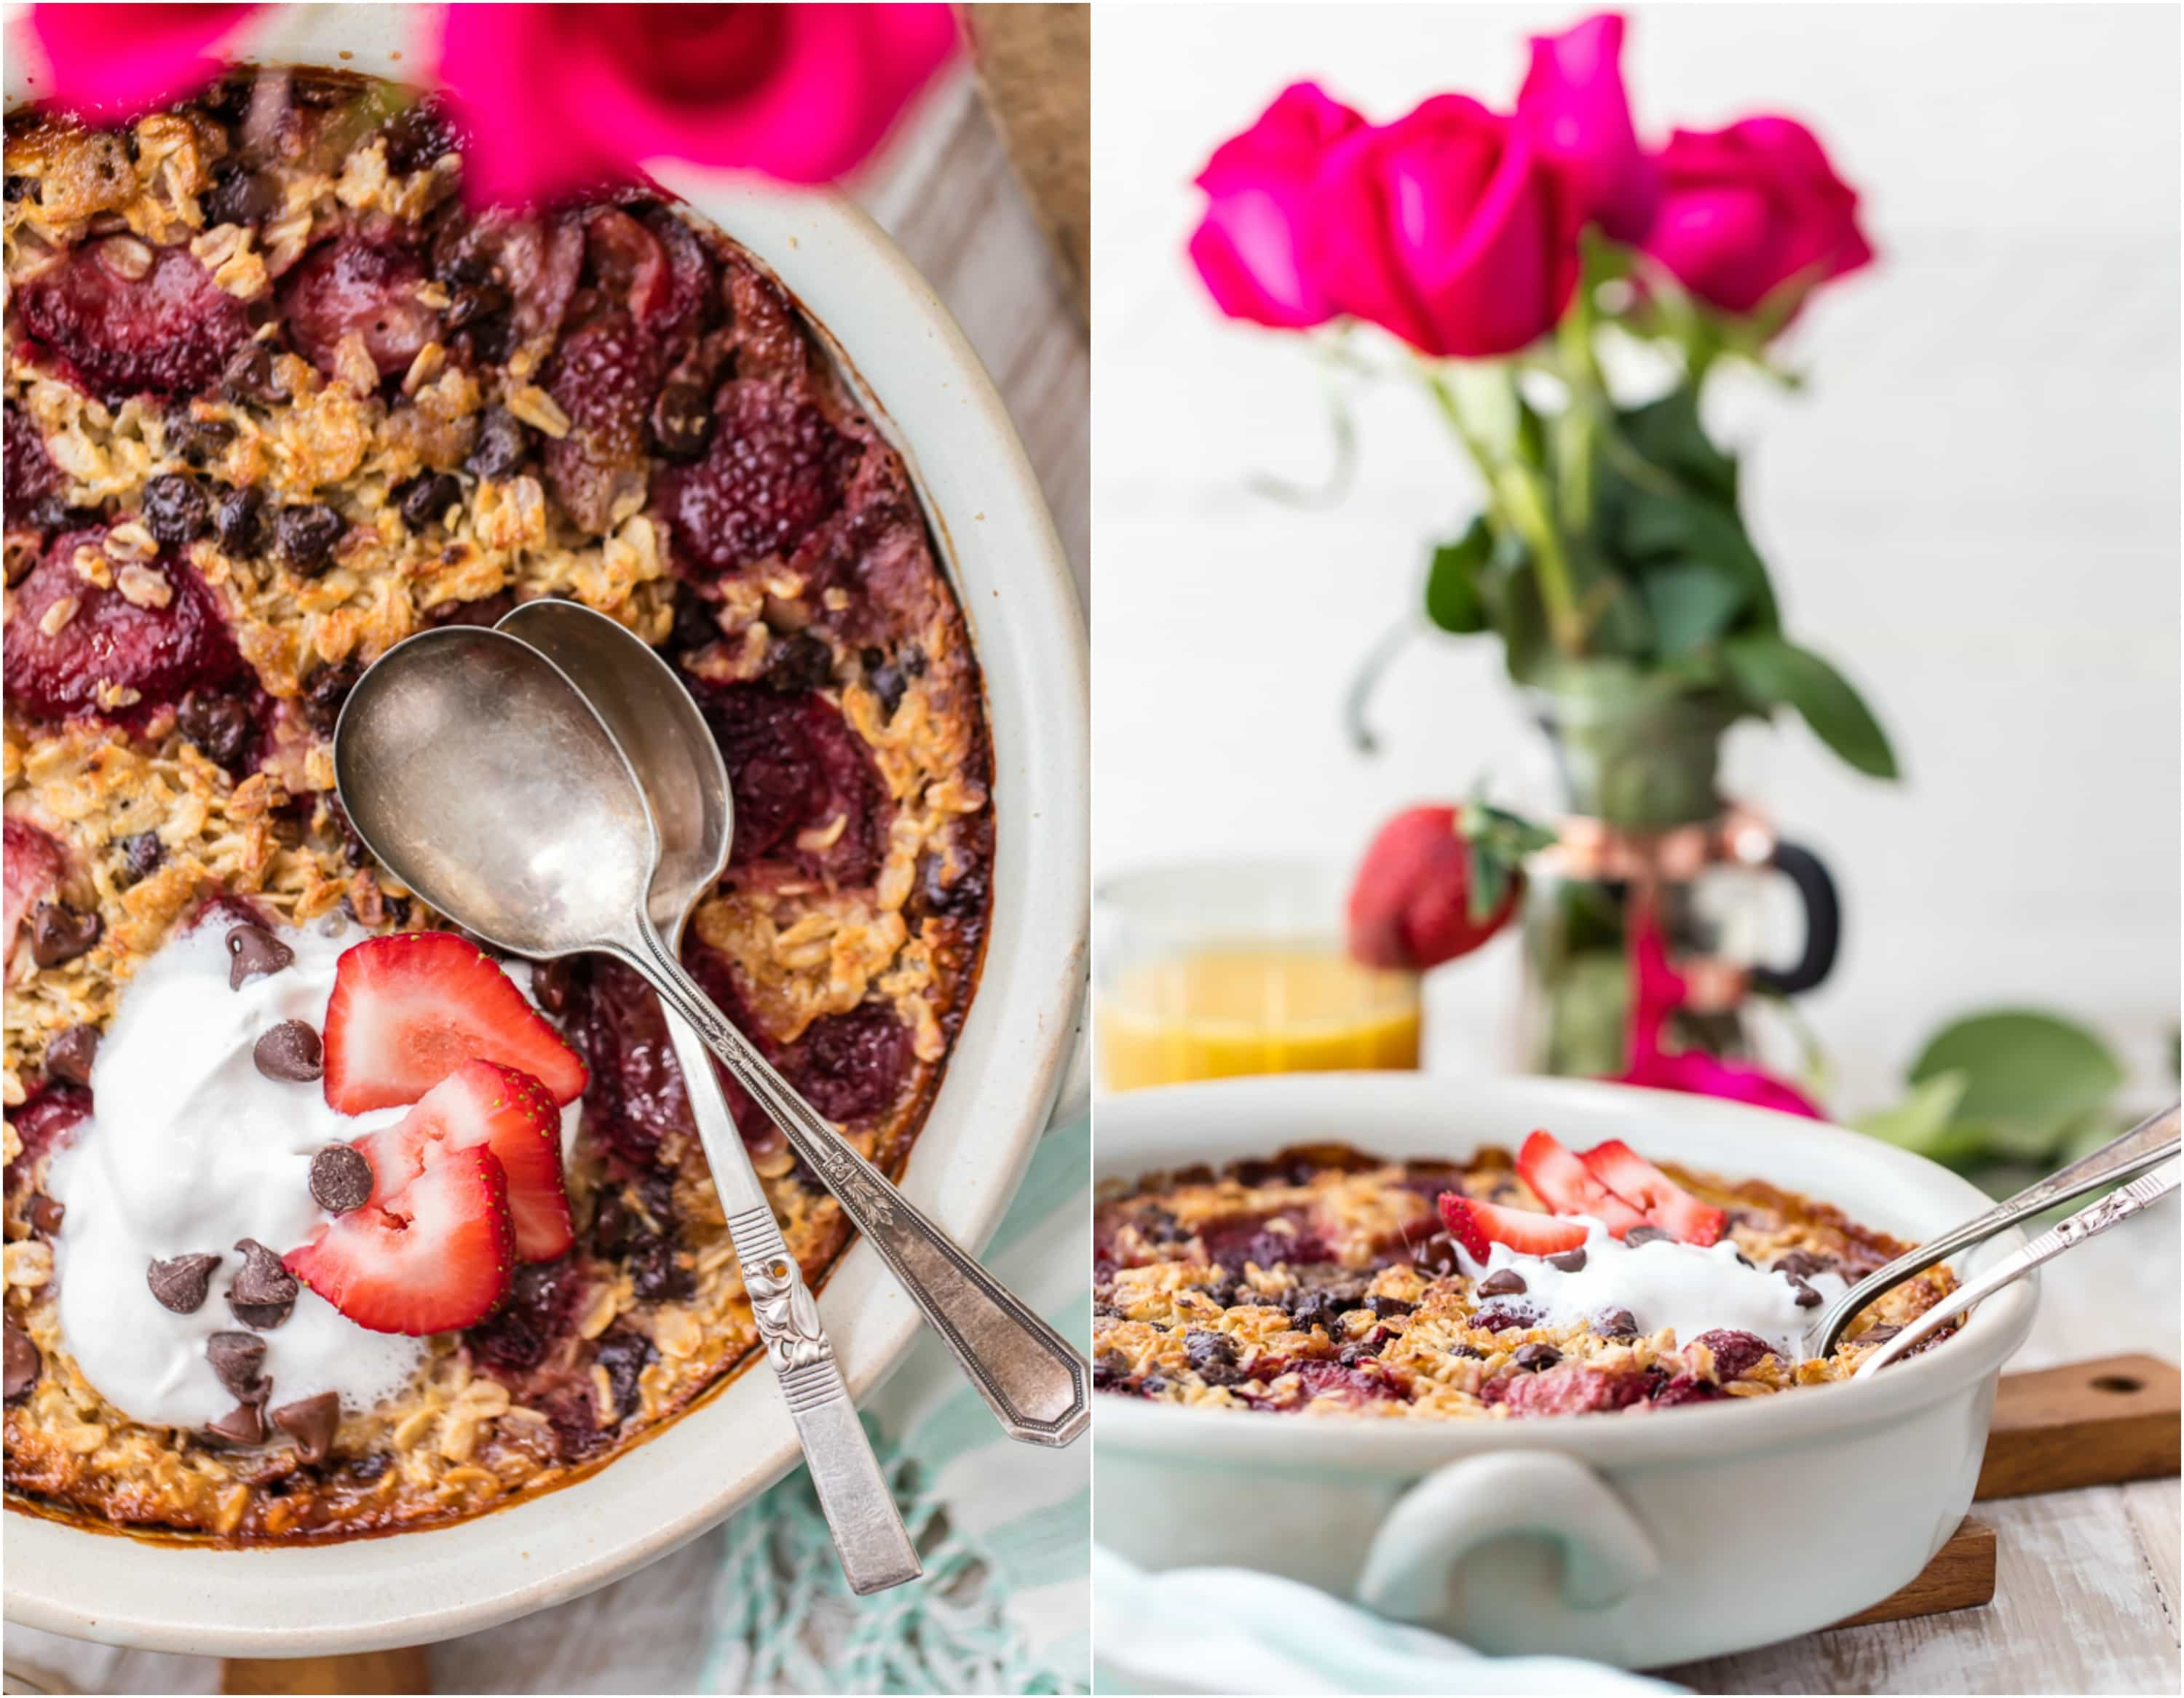 Chocolate Covered Strawberry Baked Oatmeal - The Cookie Rookie